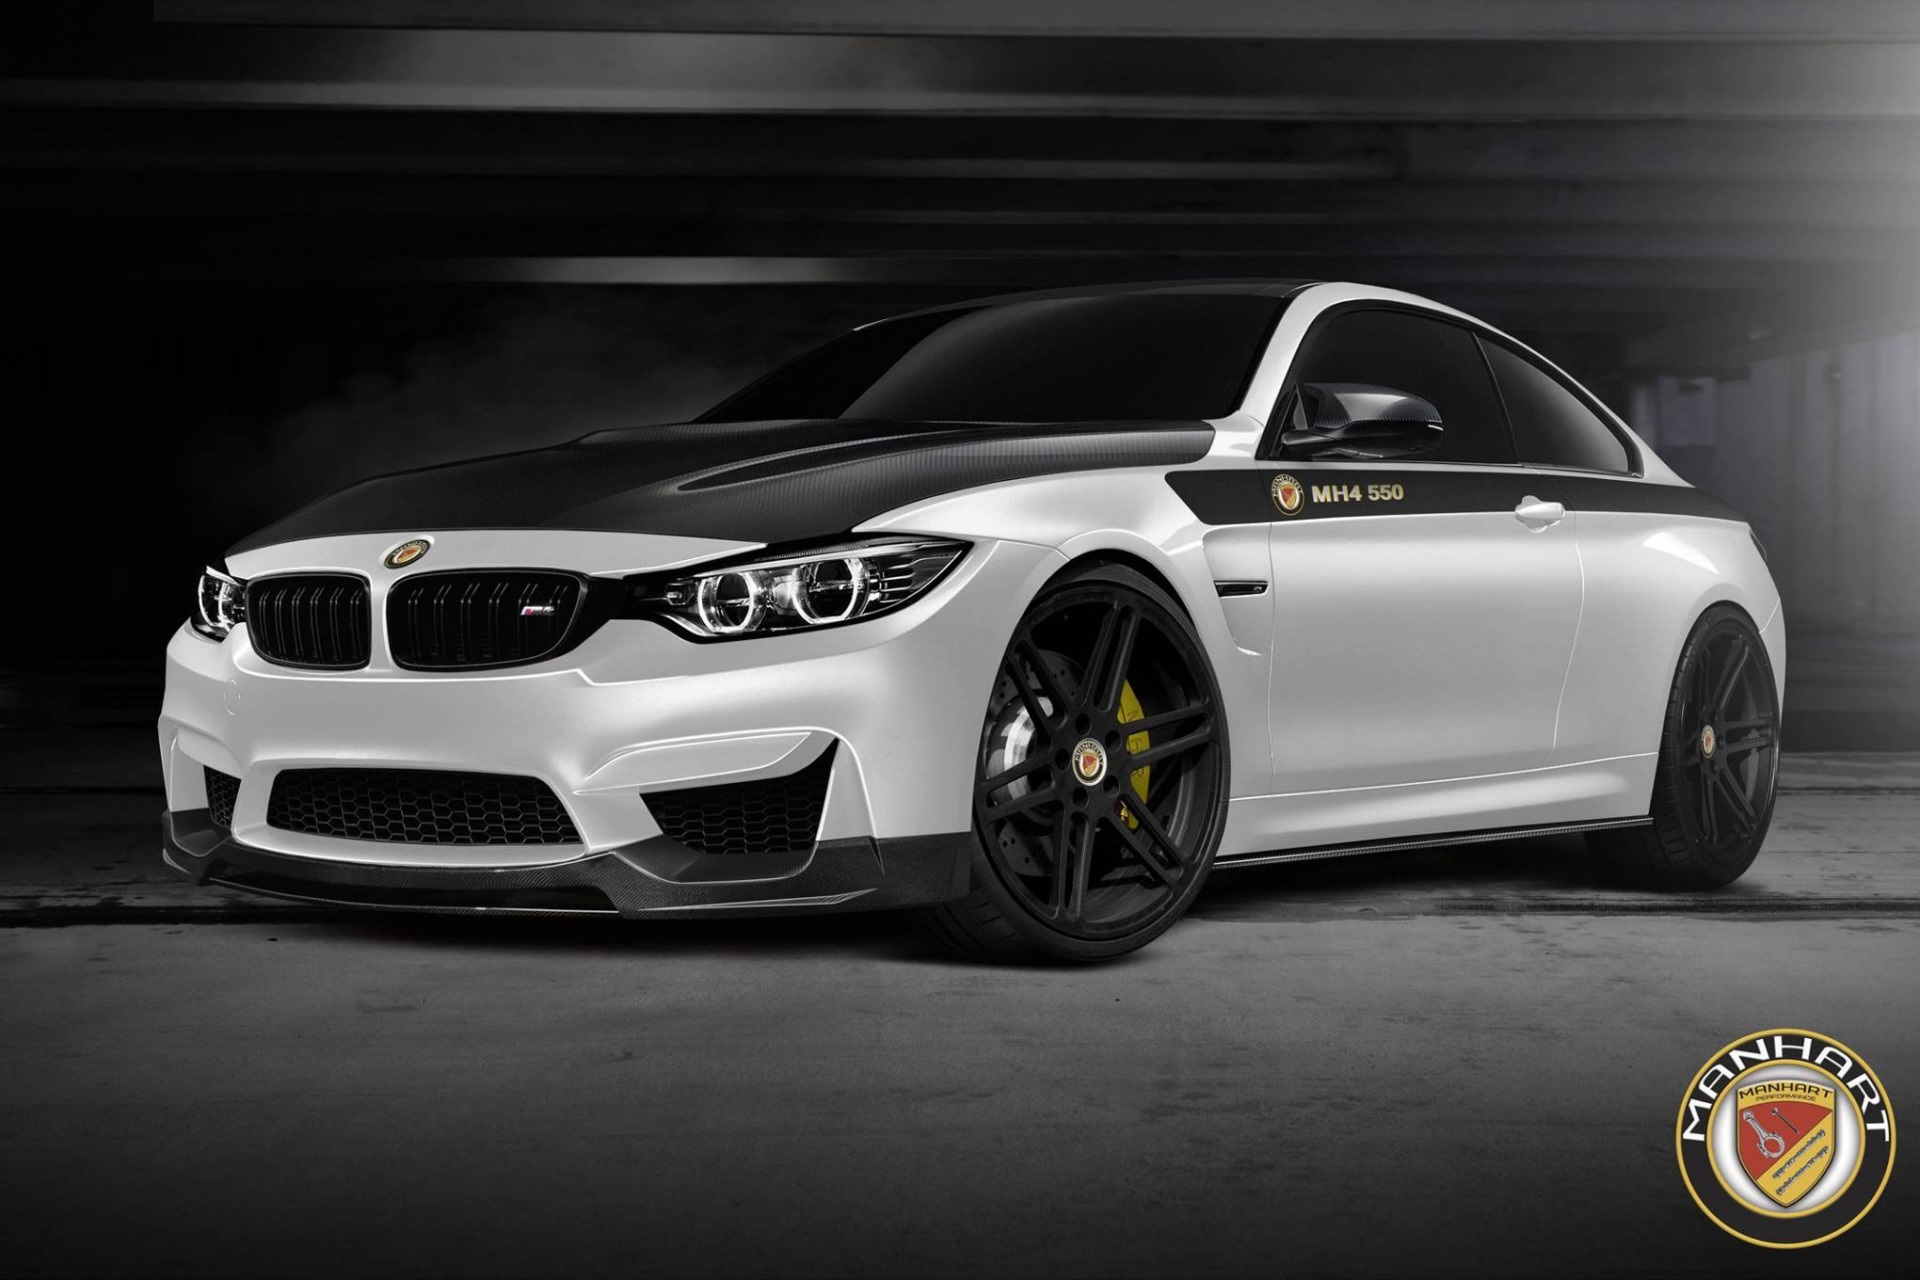 bmw cars tuning manhart racing tuned bmw m4 packs 410kw. Black Bedroom Furniture Sets. Home Design Ideas